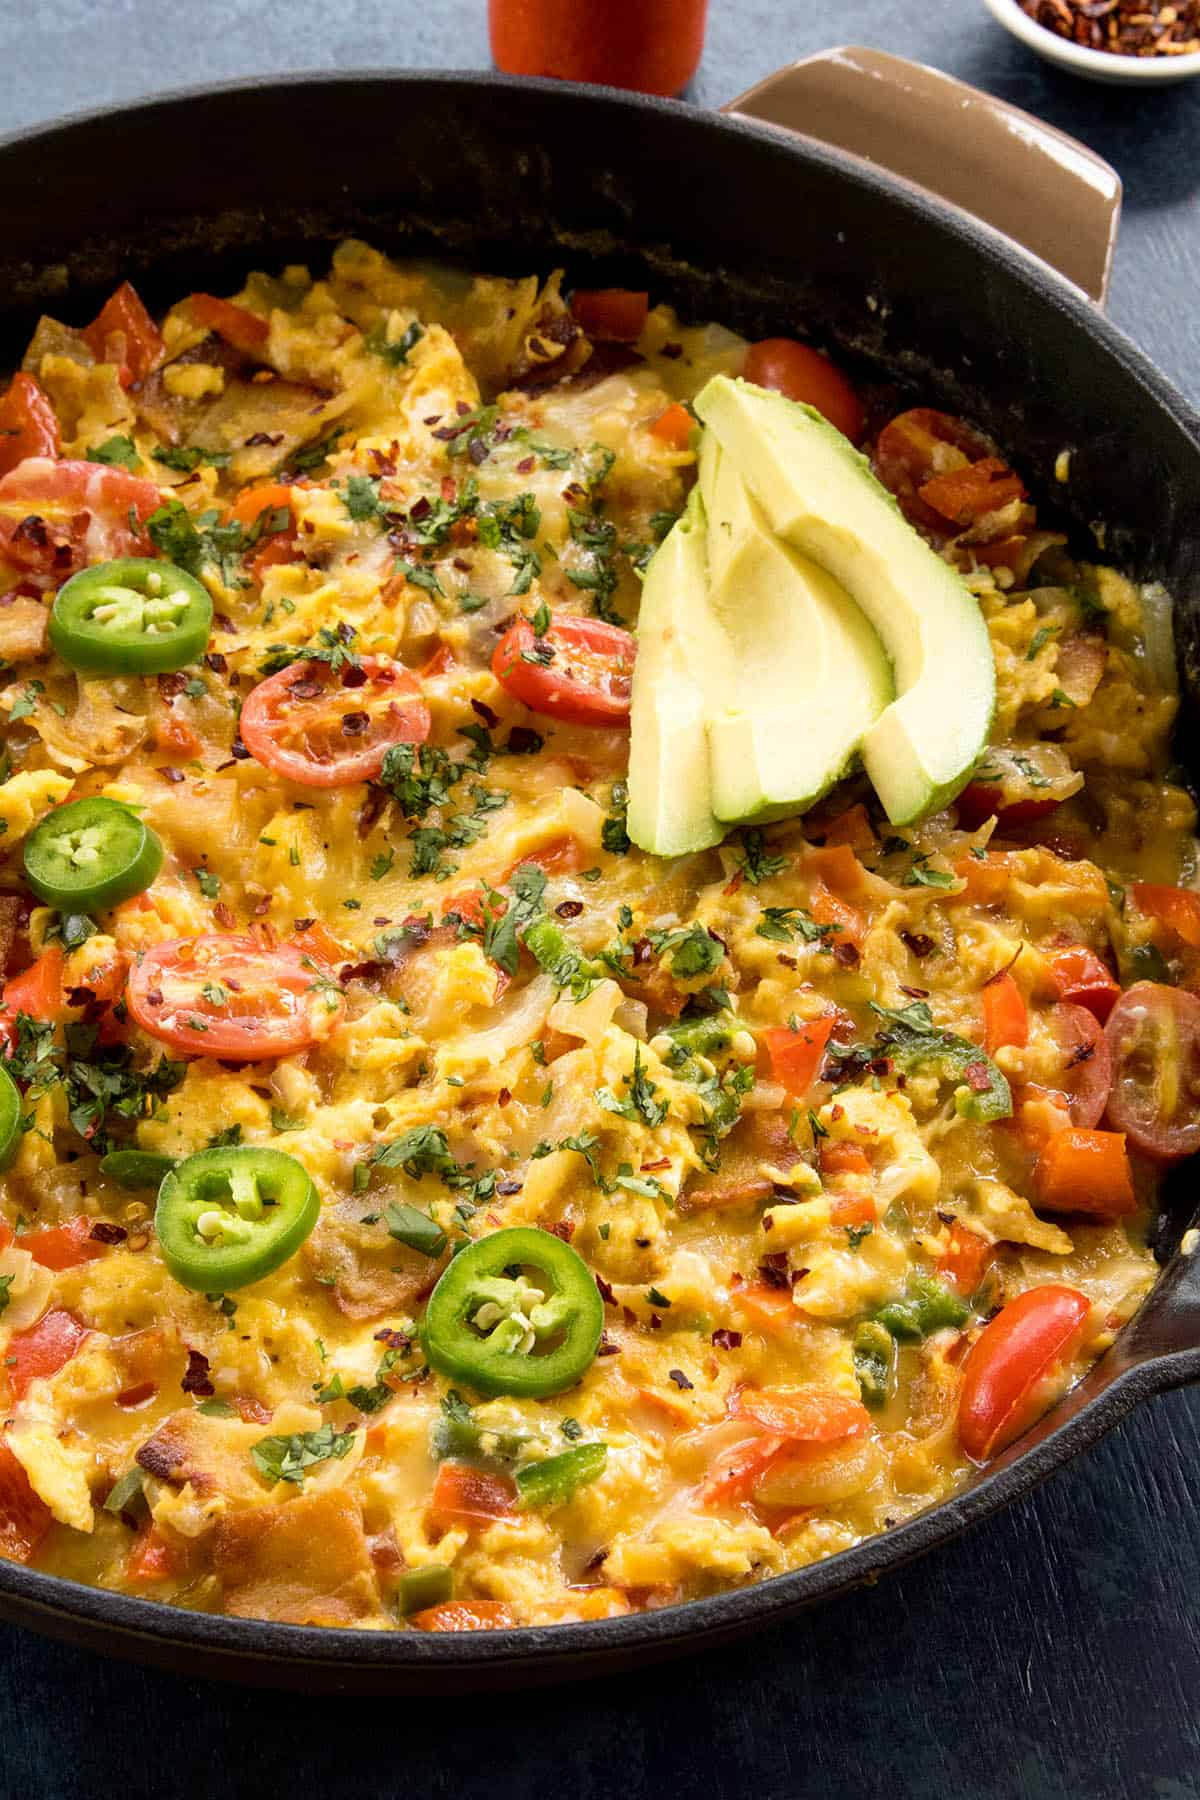 Migas (Scrambled Eggs with Crispy Tortillas)